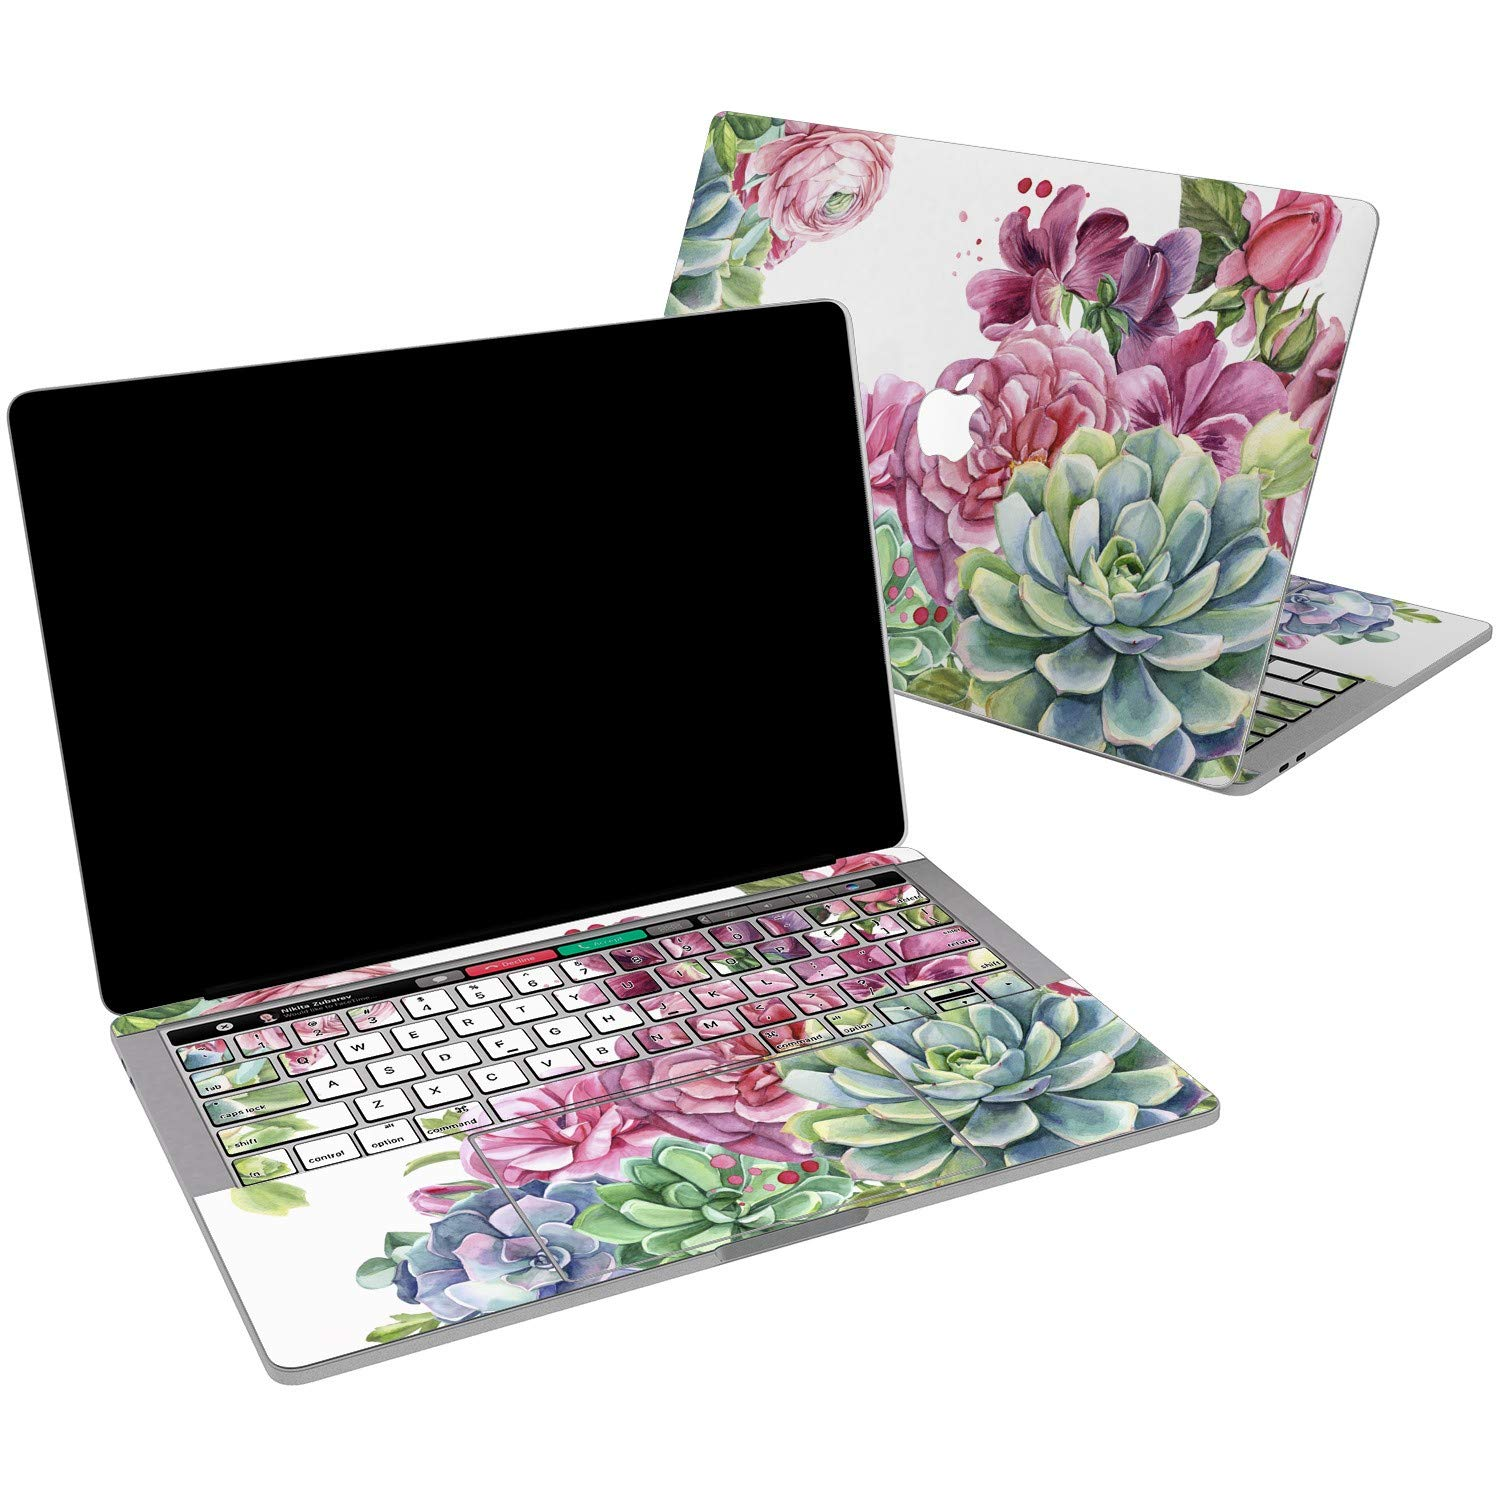 Lex Altern Vinyl Skin for MacBook Air 13 inch Mac Pro 15 Retina 12 11 2019 2018 2017 2016 2015 Succulent Flowers Bouquet Pink Cactus Plants Bloom Print Girl Touch Bar Cover Keyboard Decal Sticker